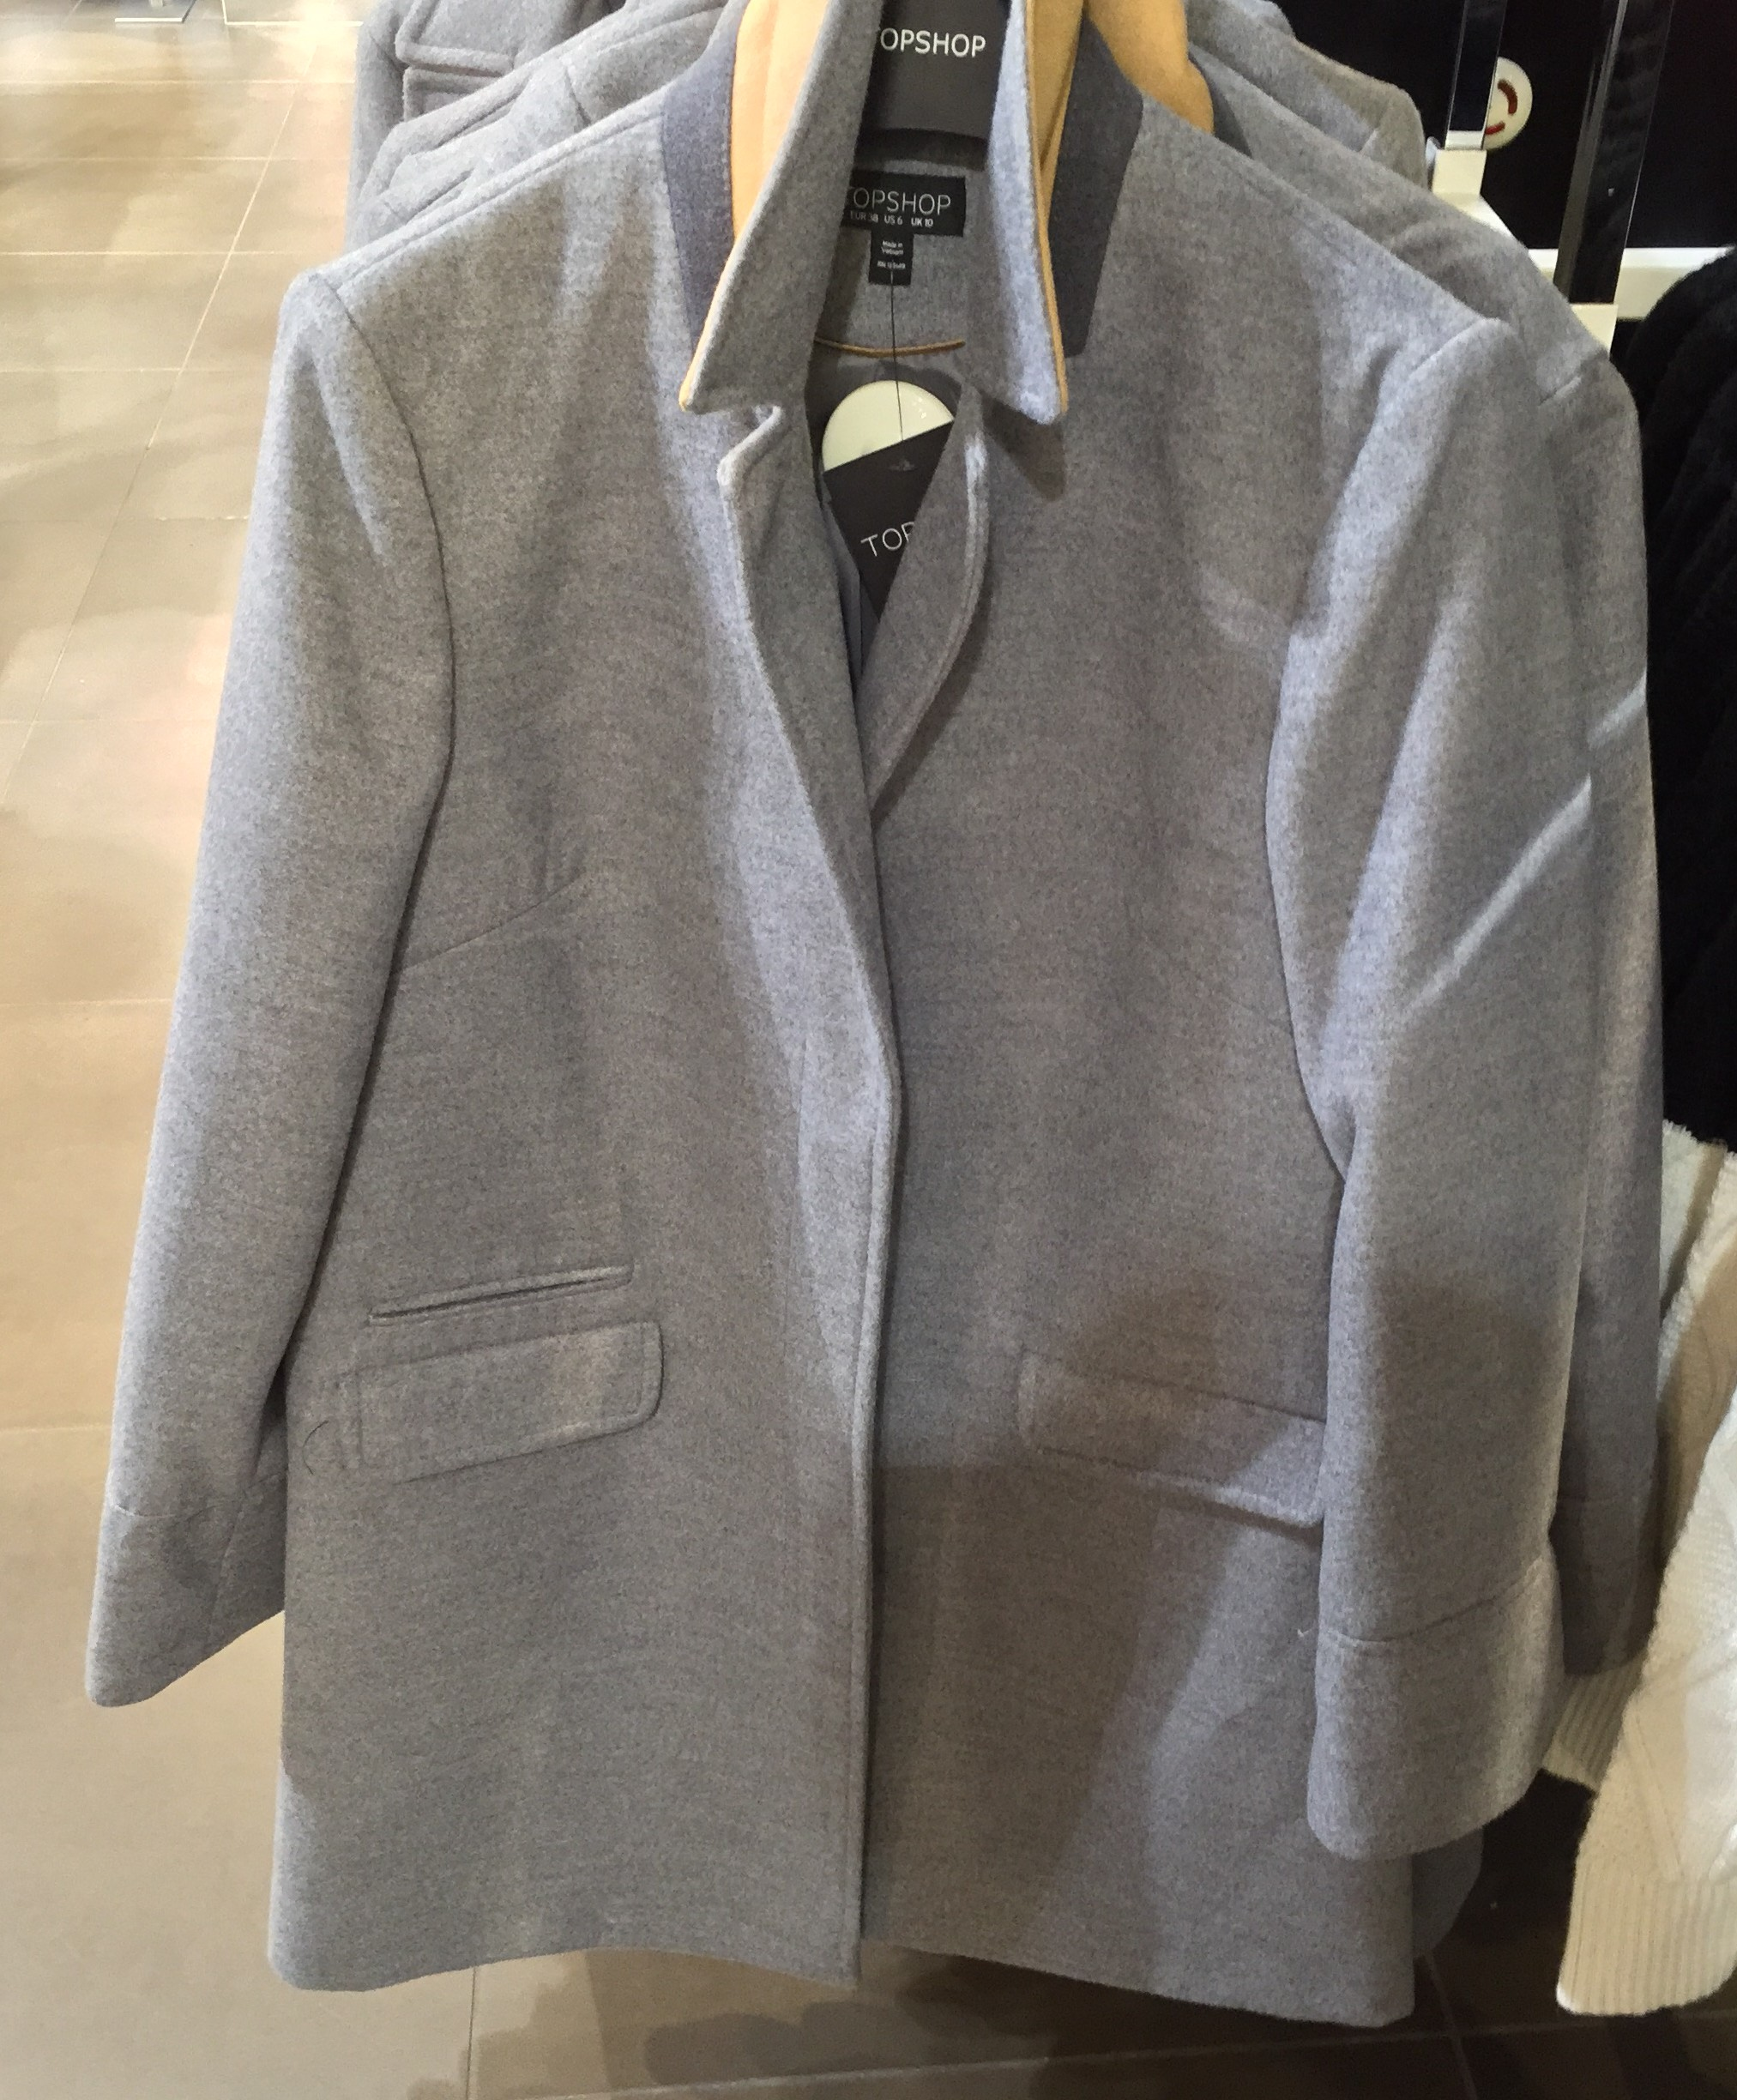 Online personal stylist - Westfield London - cocomamastyle - coats